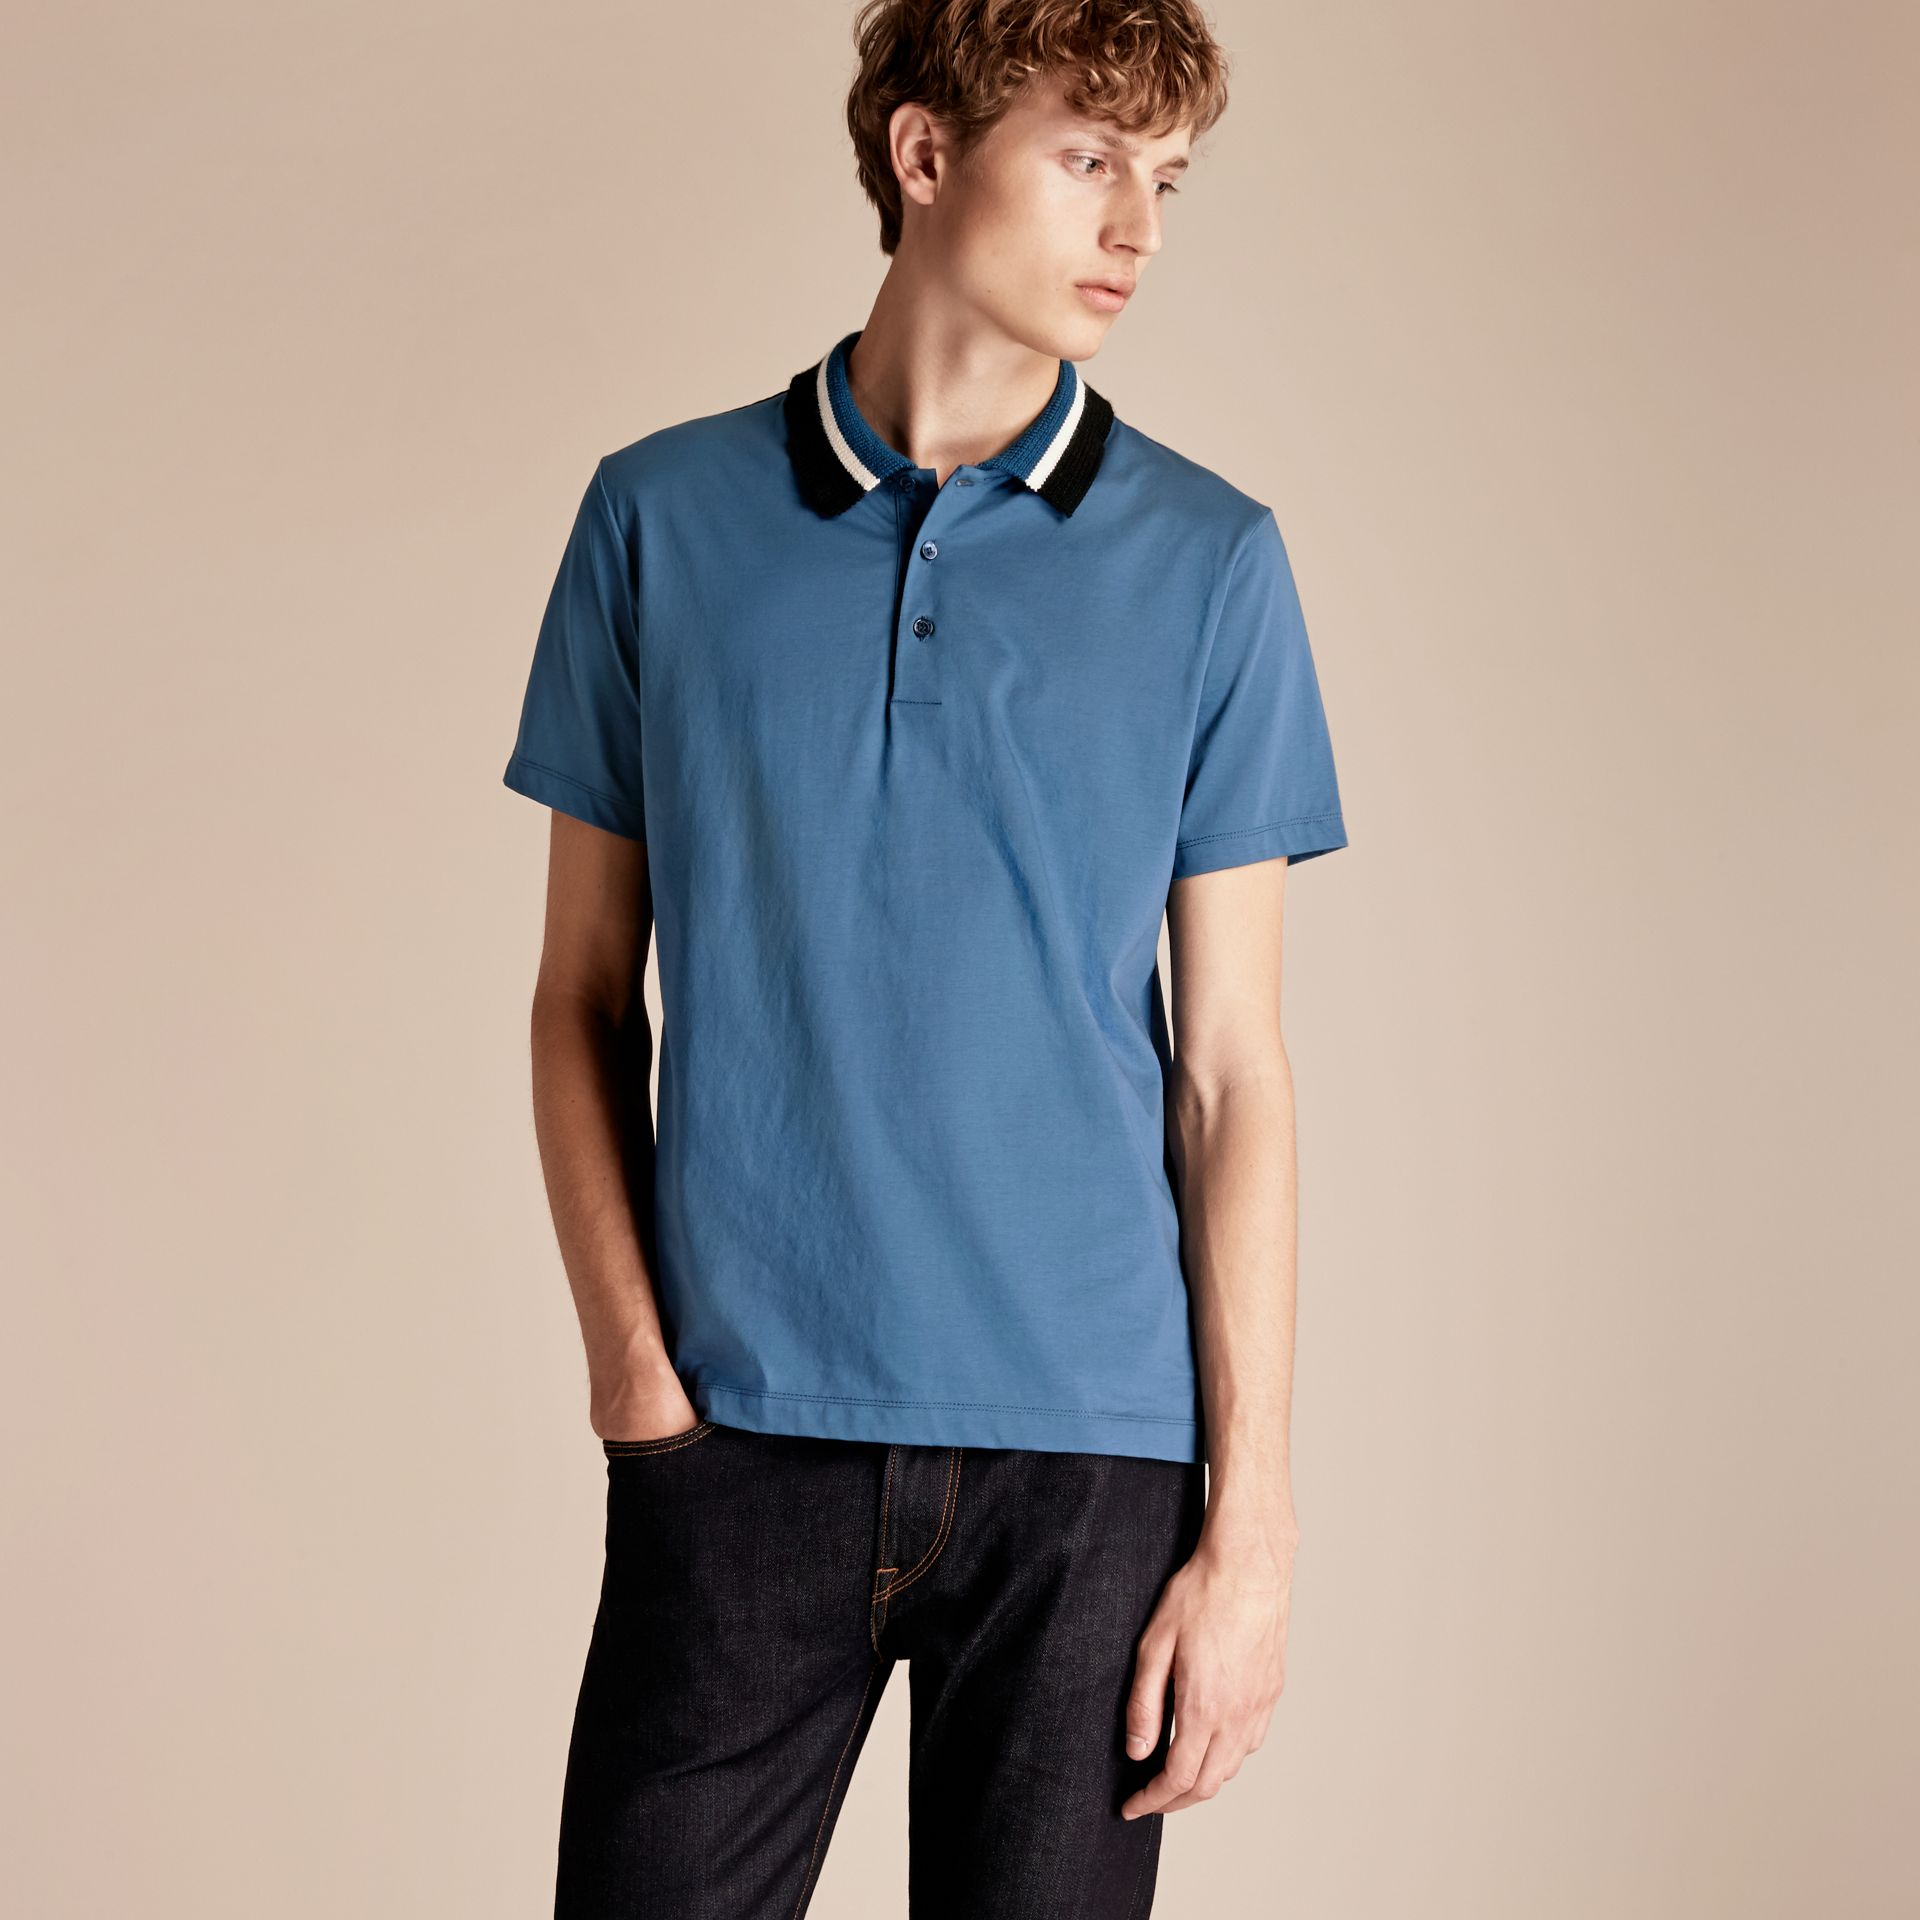 Mineral blue Cotton Polo Shirt with Knitted Collar Mineral Blue - gallery image 6